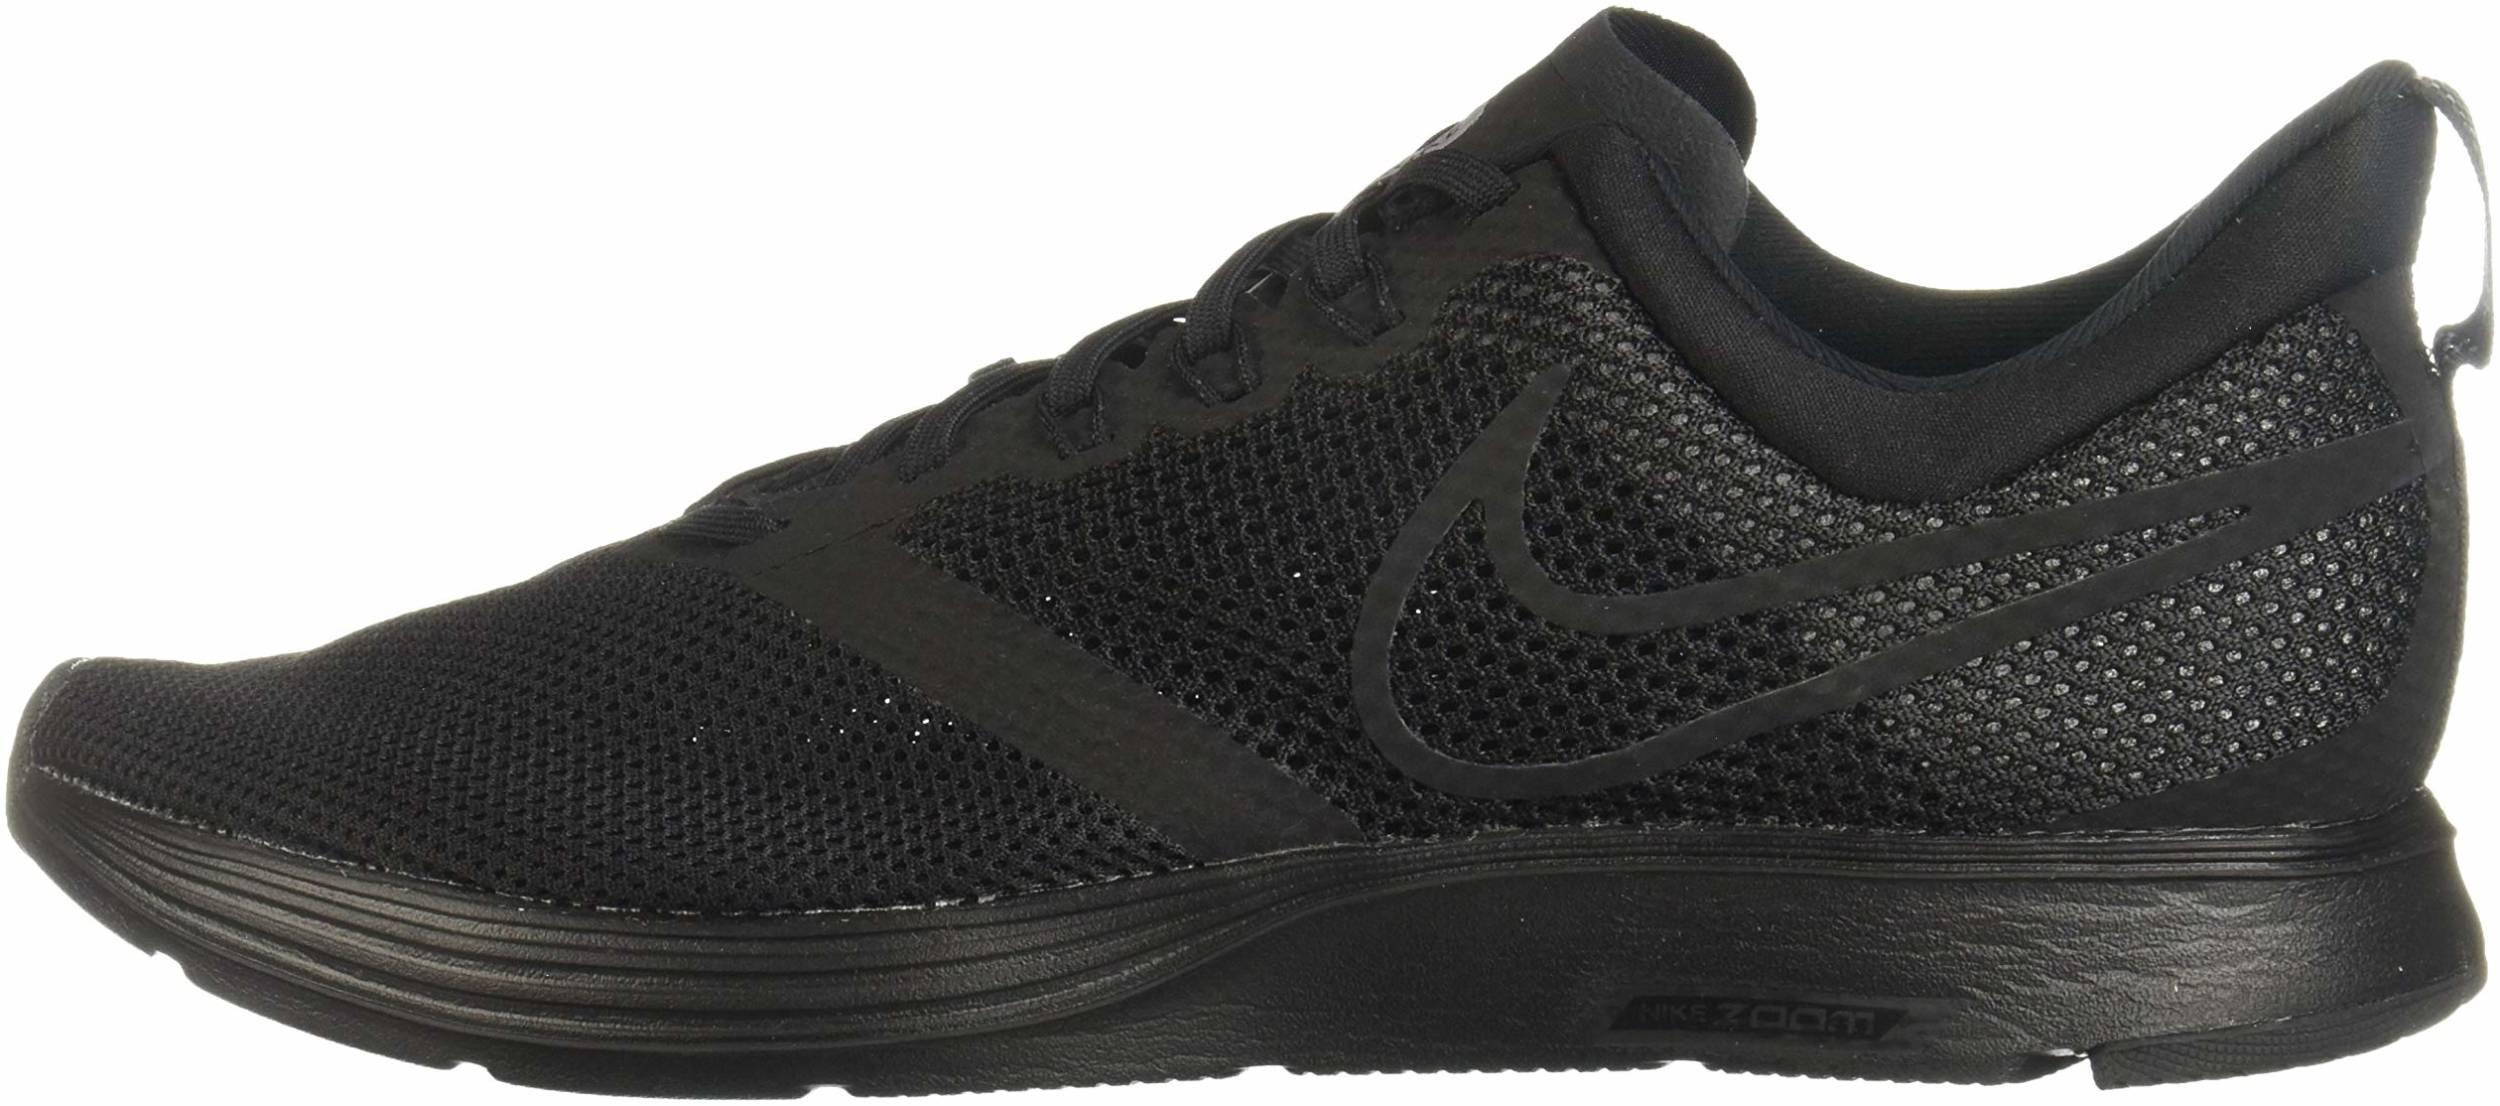 Only $60 + Review of Nike Zoom Strike